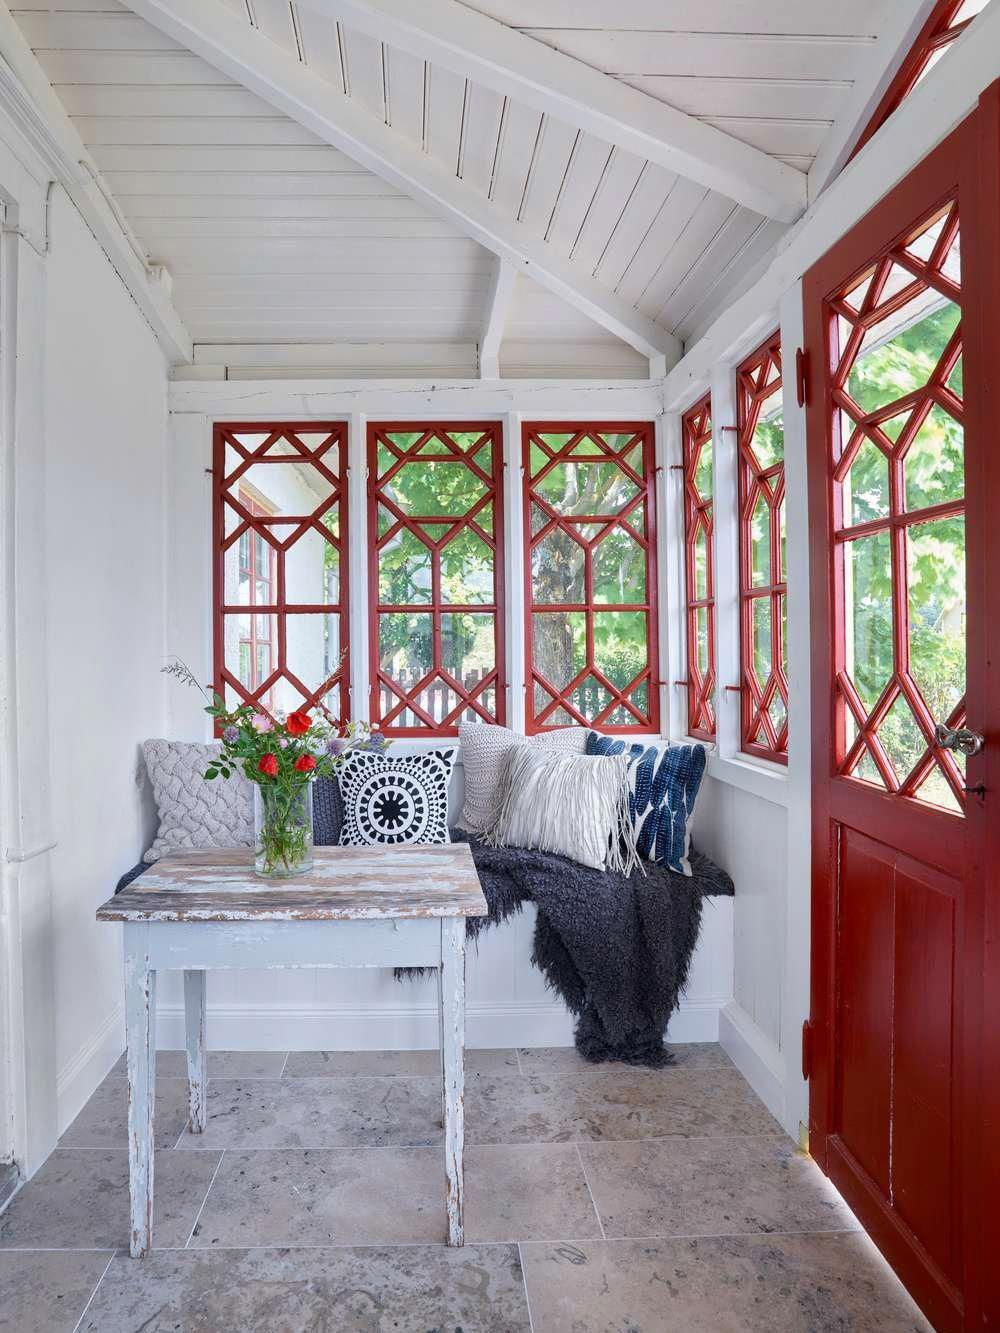 sunroom, grey floor, white wall, white wooden ceiling, red framed window, red door, white built in bench, white pillows